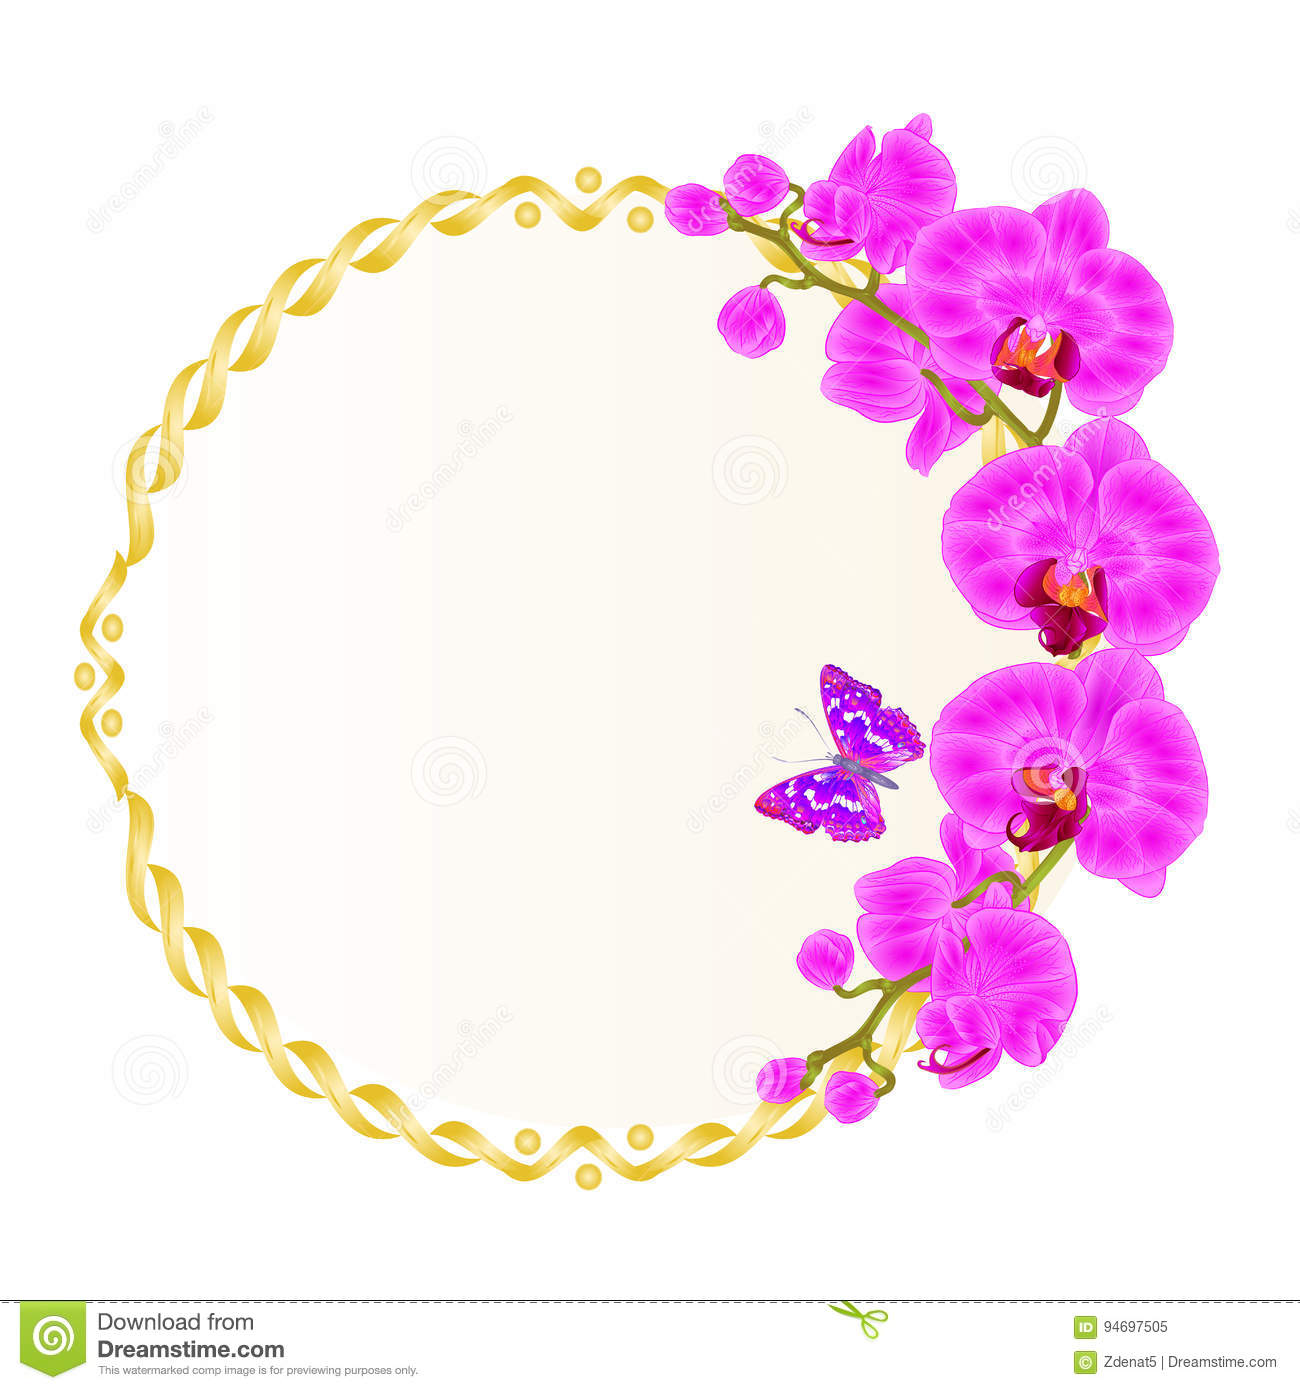 Floral vector round golden frame with orchids purple flowers tropical plants Phalaenopsis and cute small butterfly vintage